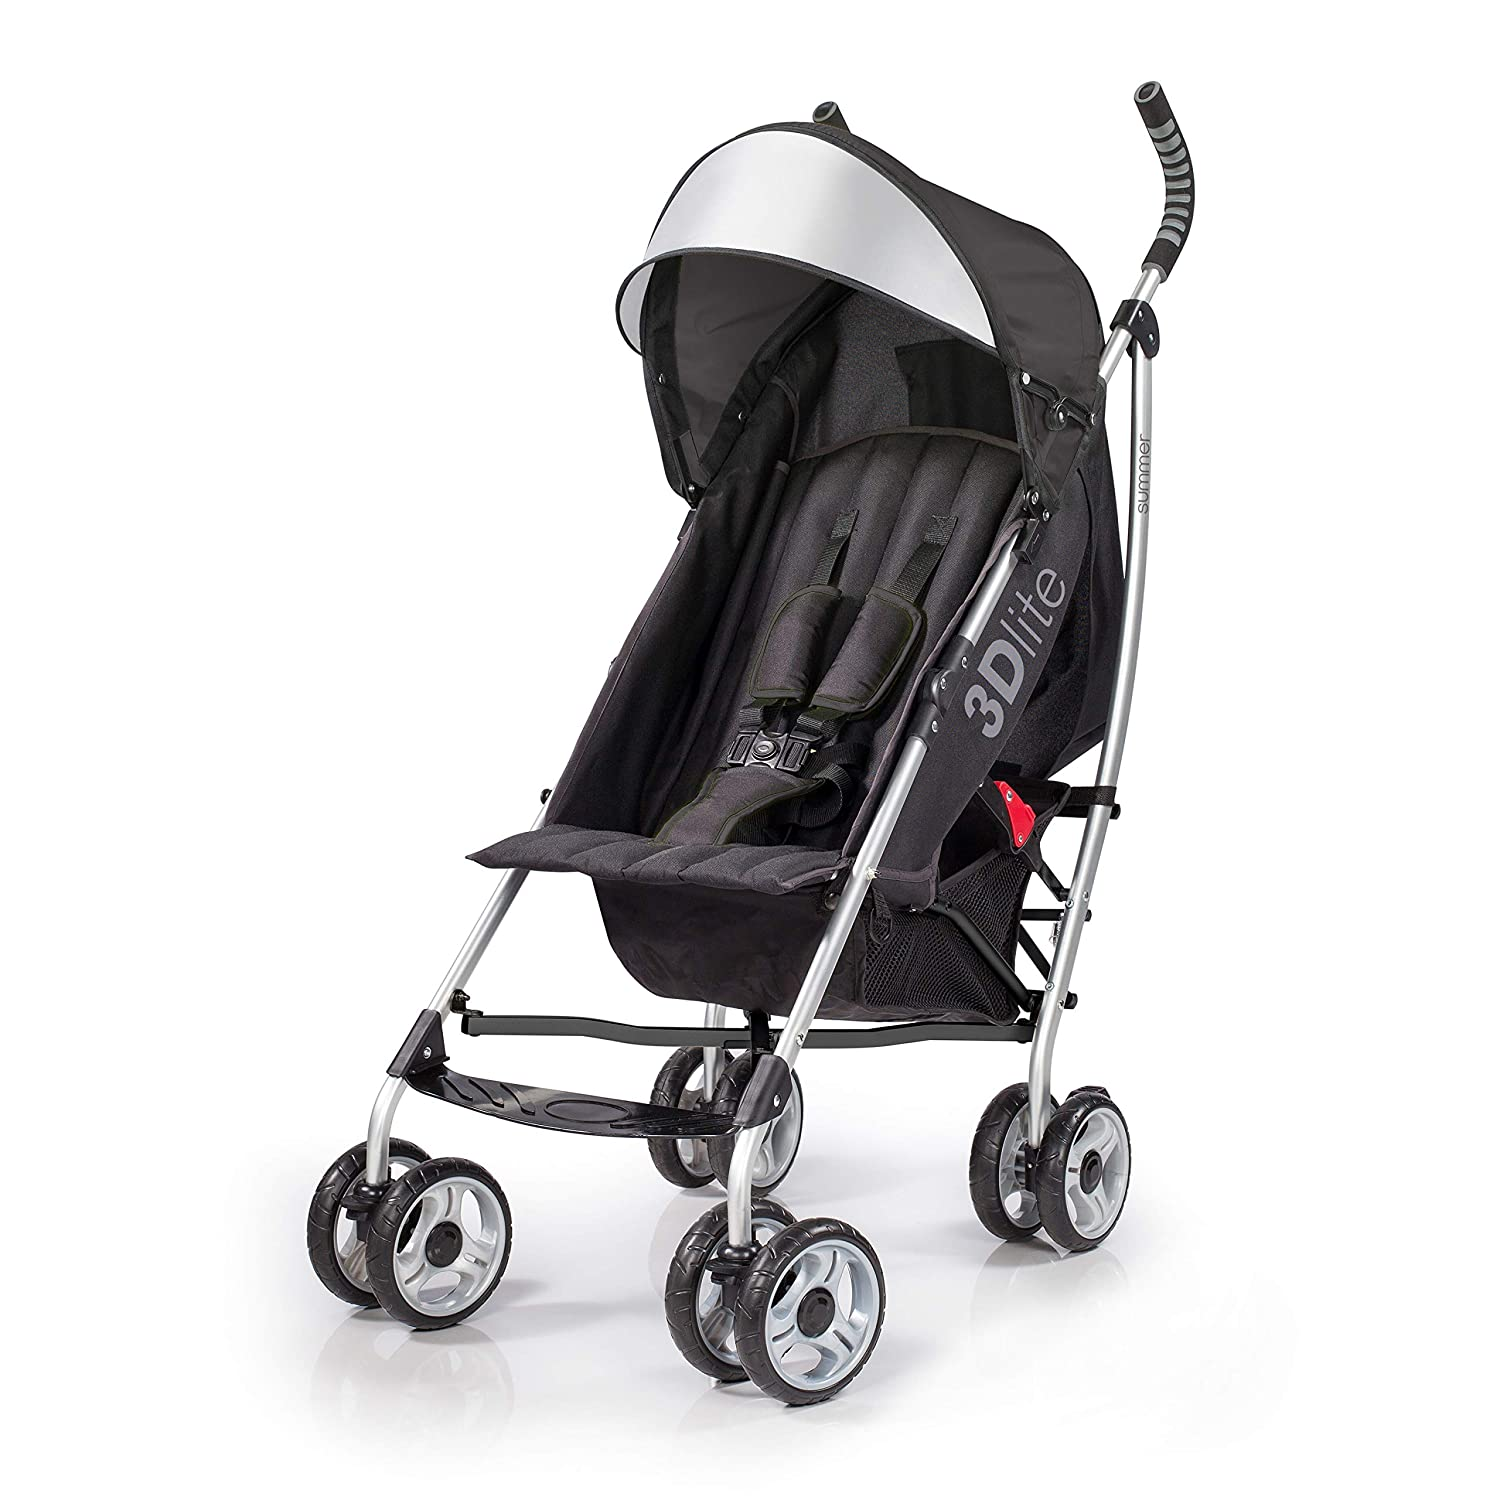 Top 9 Best Lightweight Strollers For Travel (2020 Reviews) 3